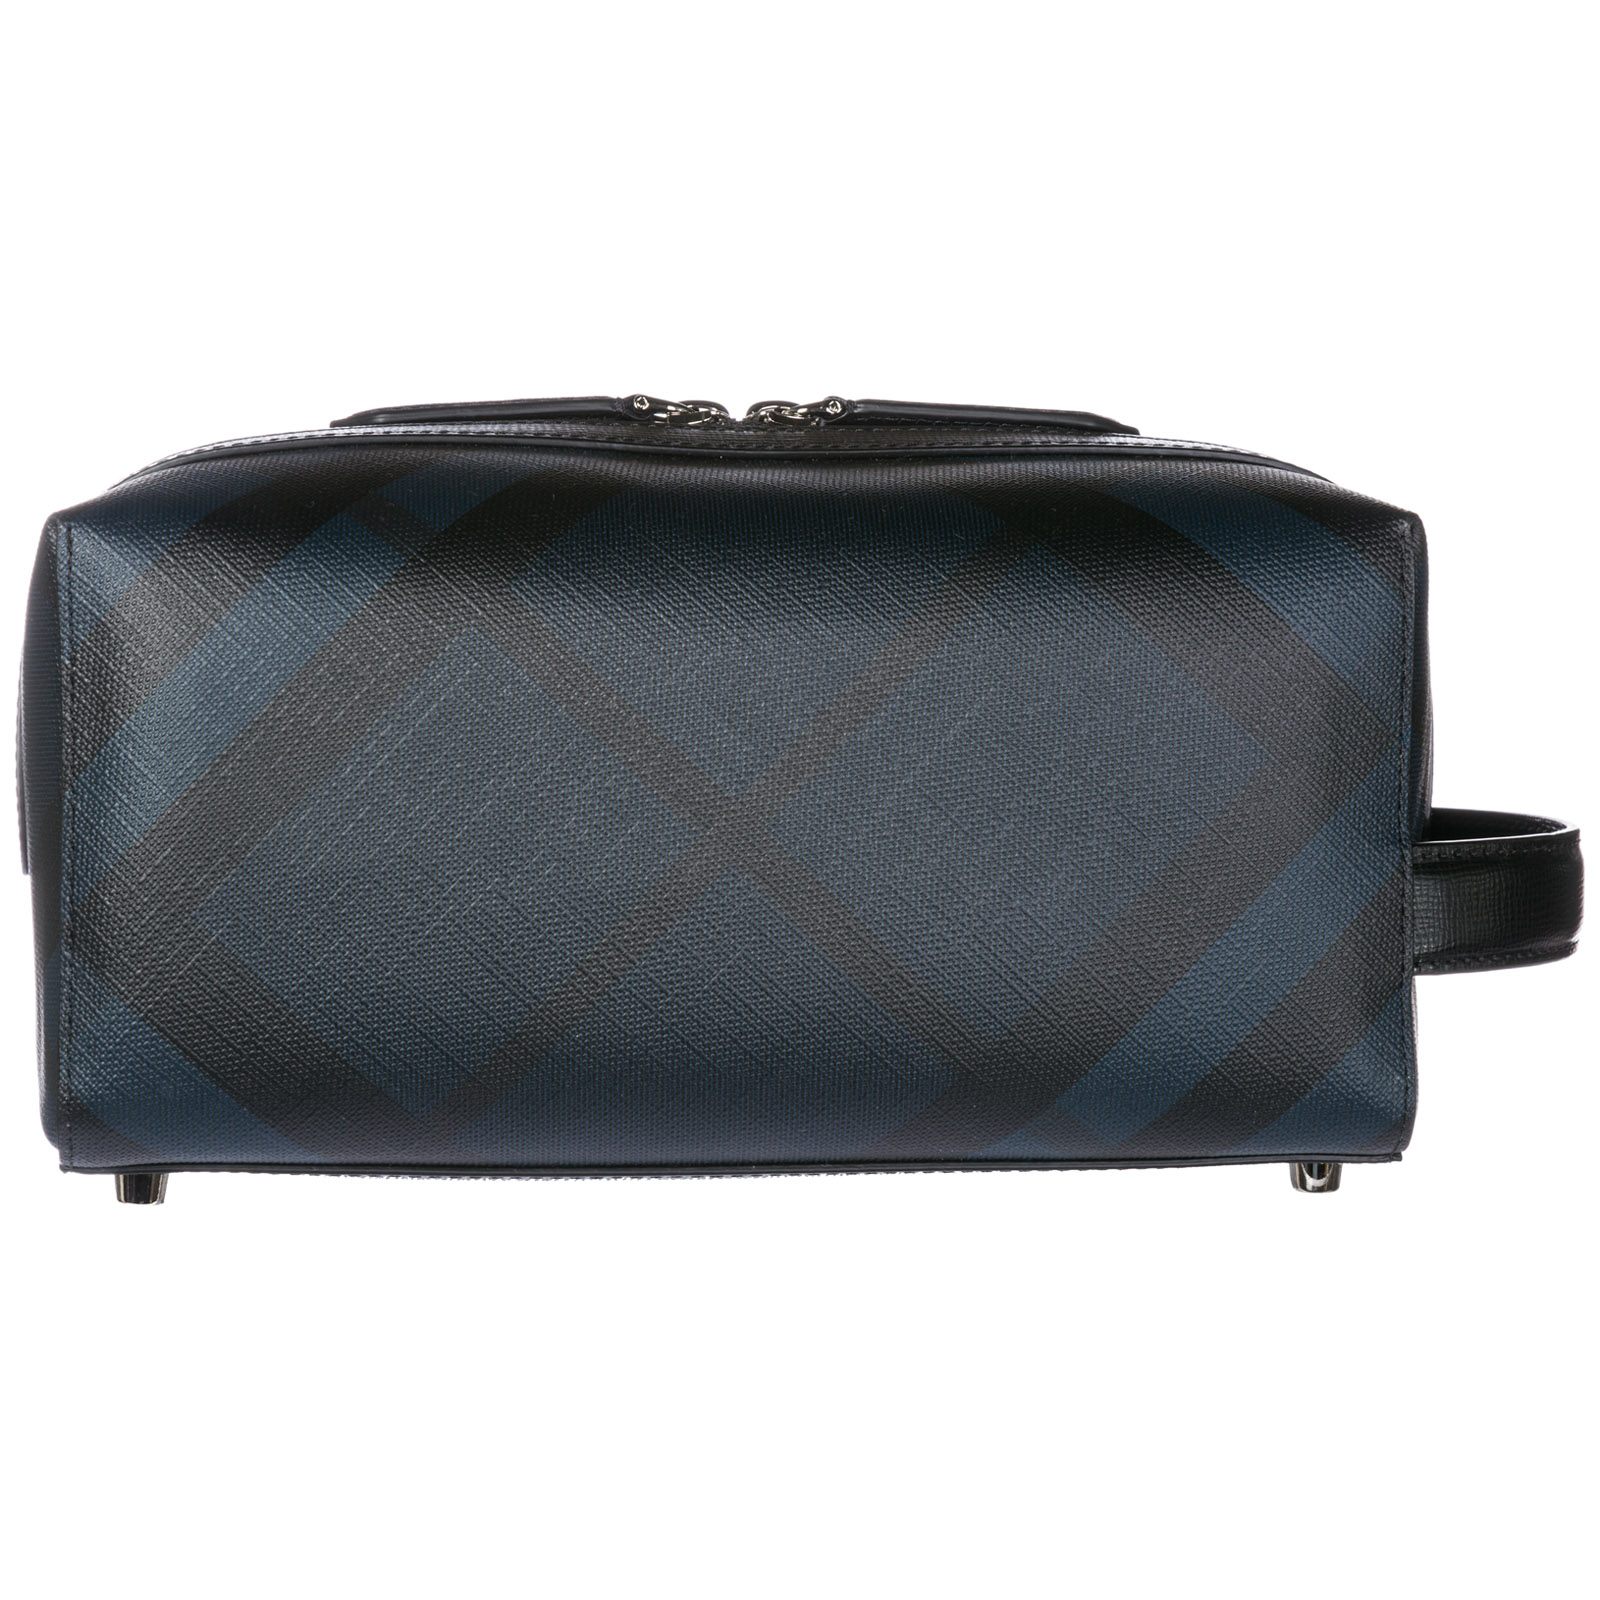 ... Men s leather travel toiletries beauty case wash bag ... 48caabbf6f529